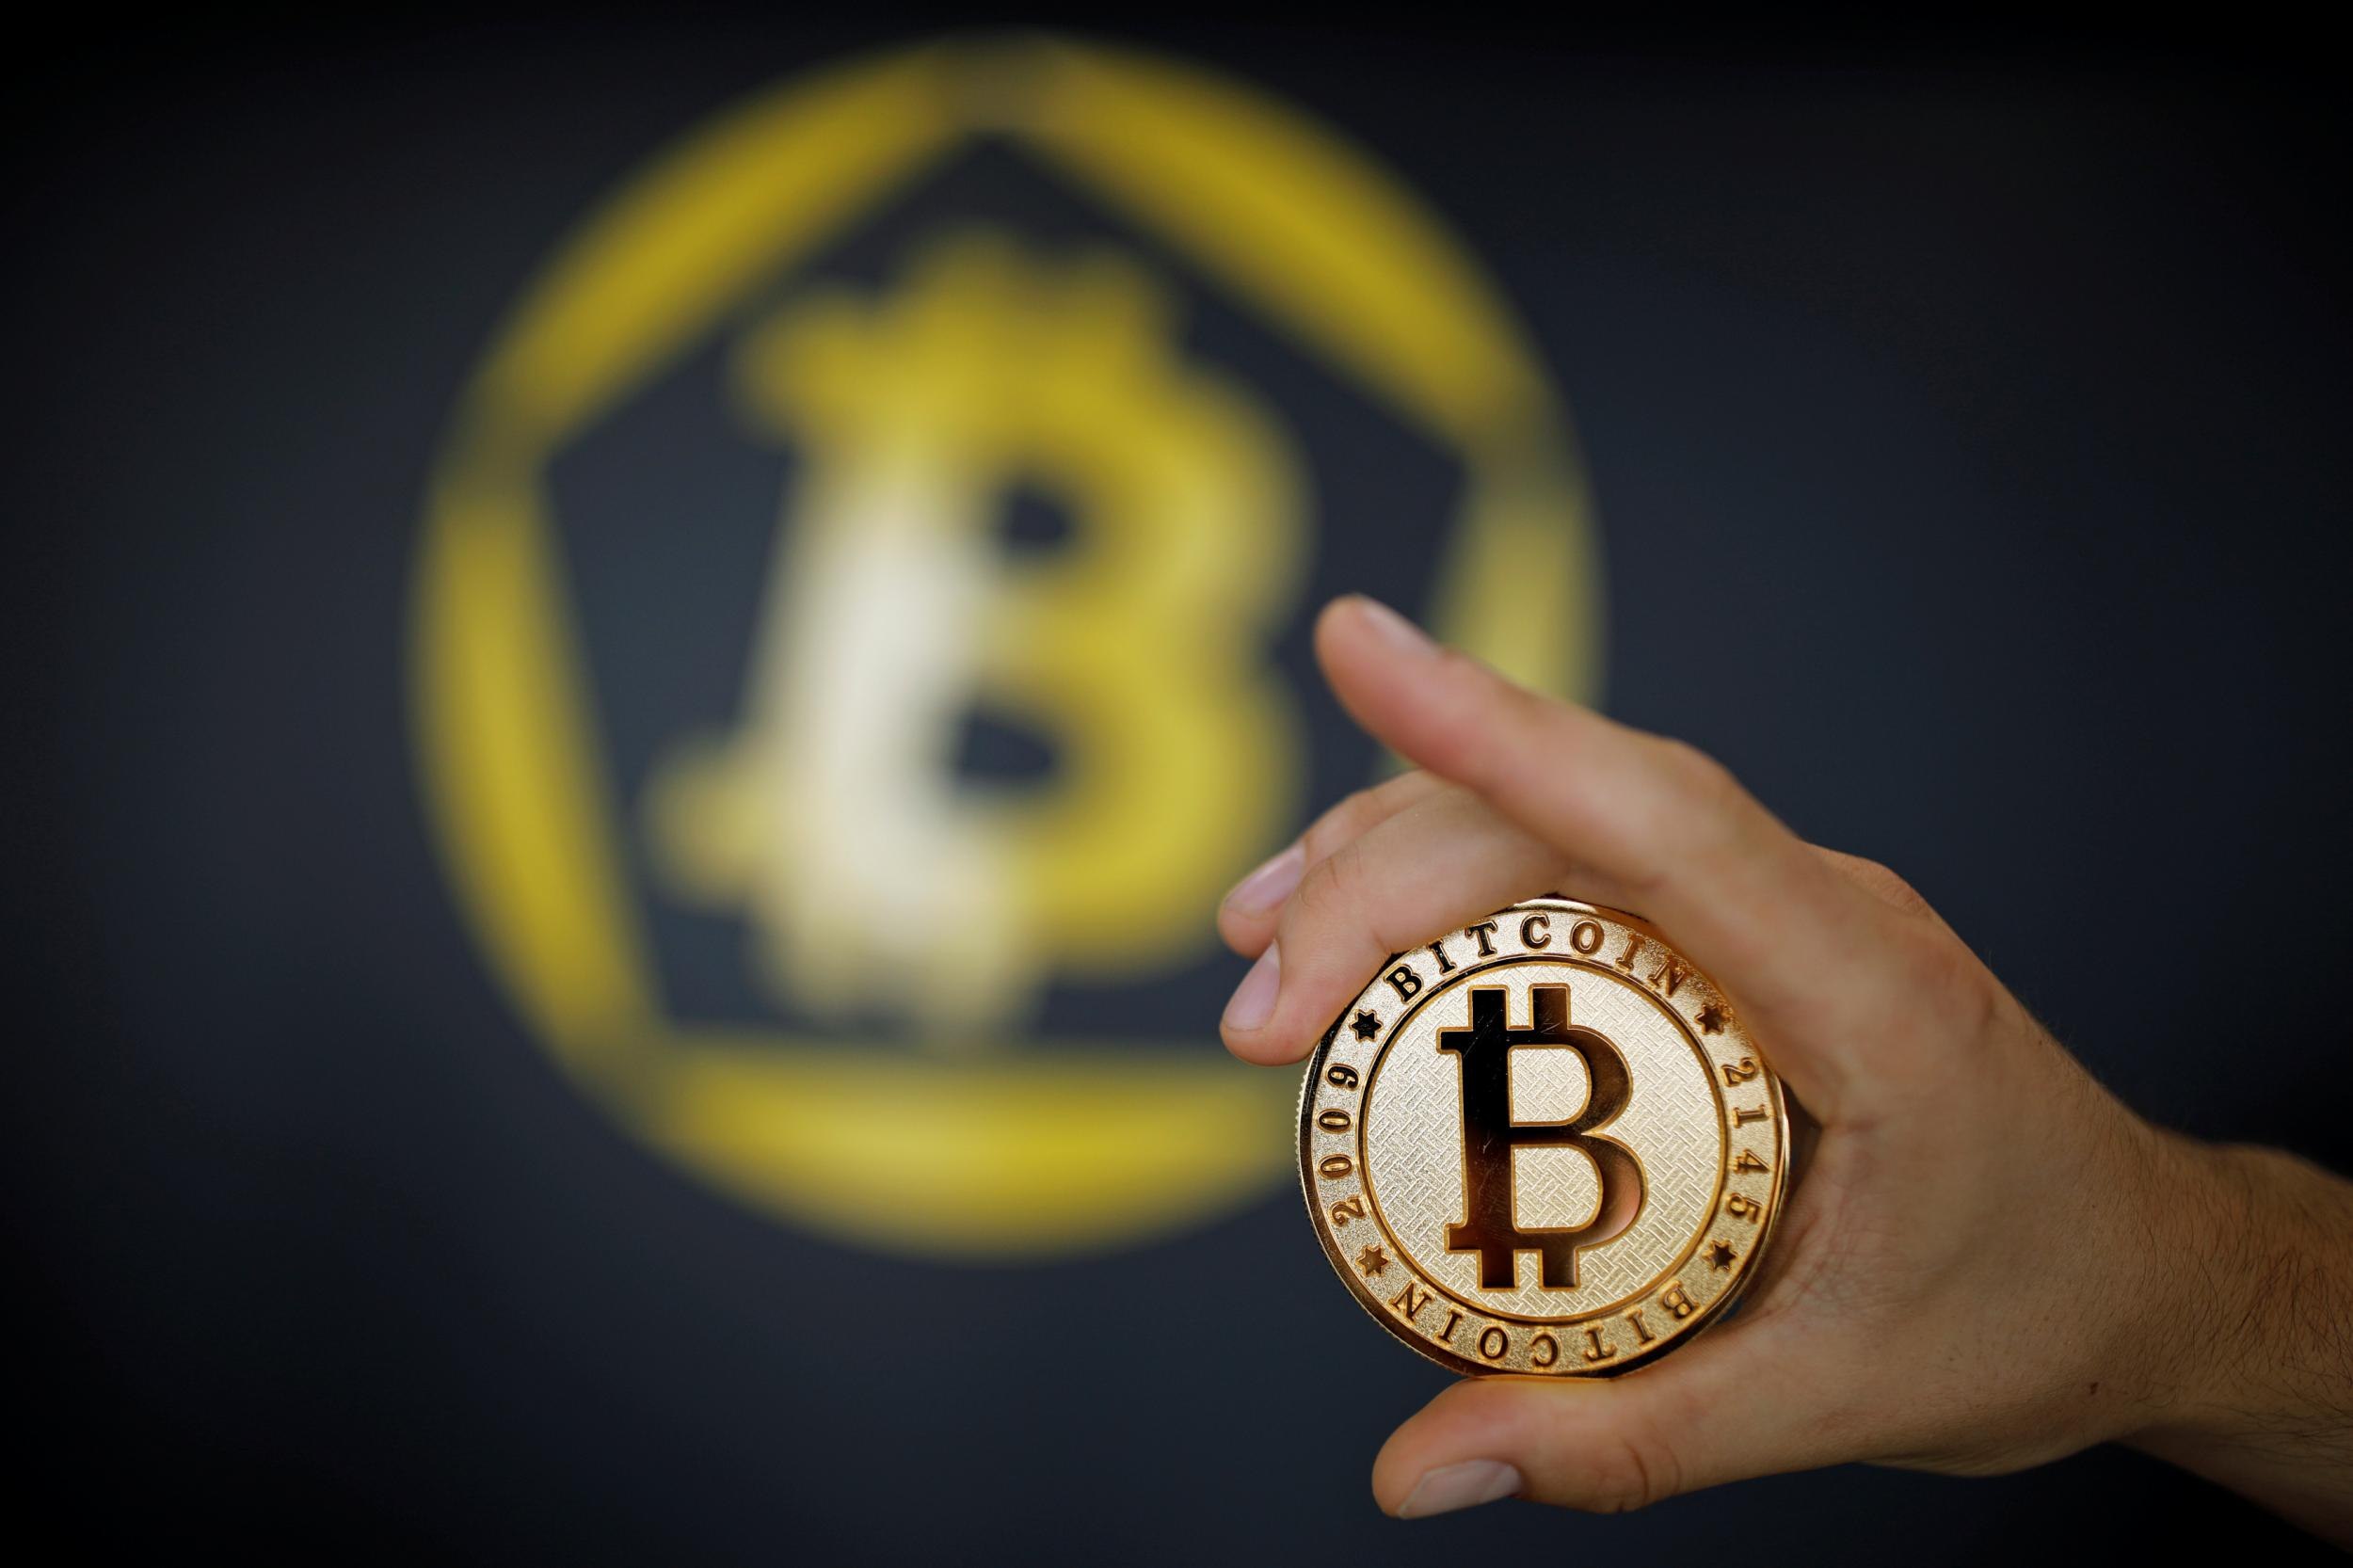 Bitcoin was just declared 'permissible' in Islamic Law